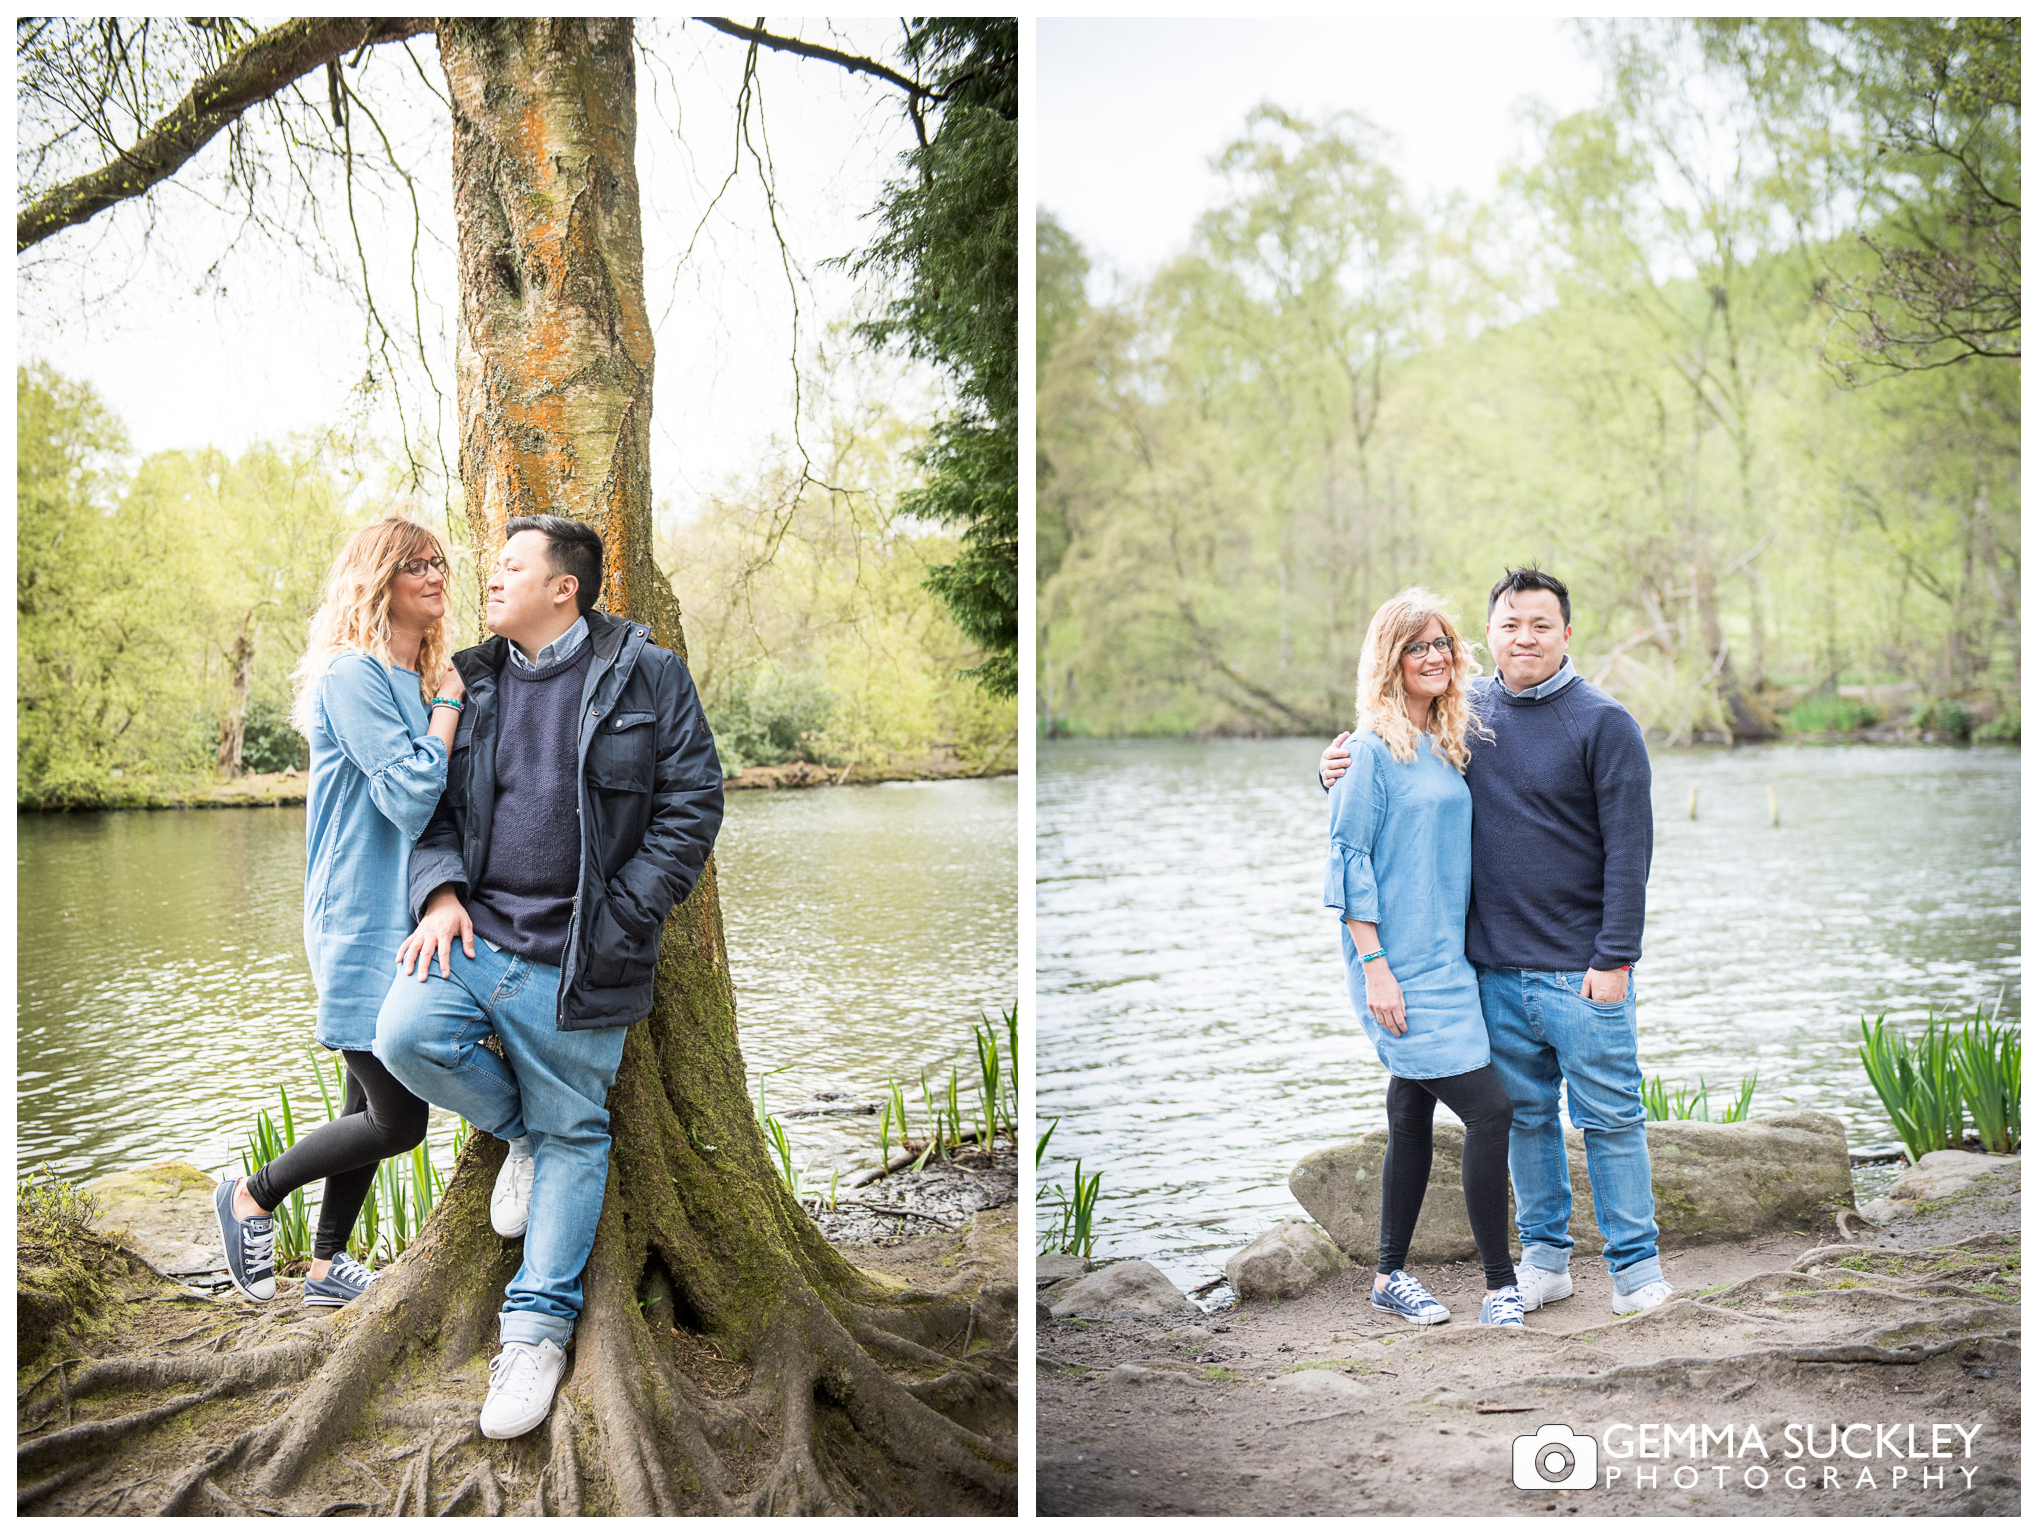 A couple on their engagement shoot in Bingley St Ives